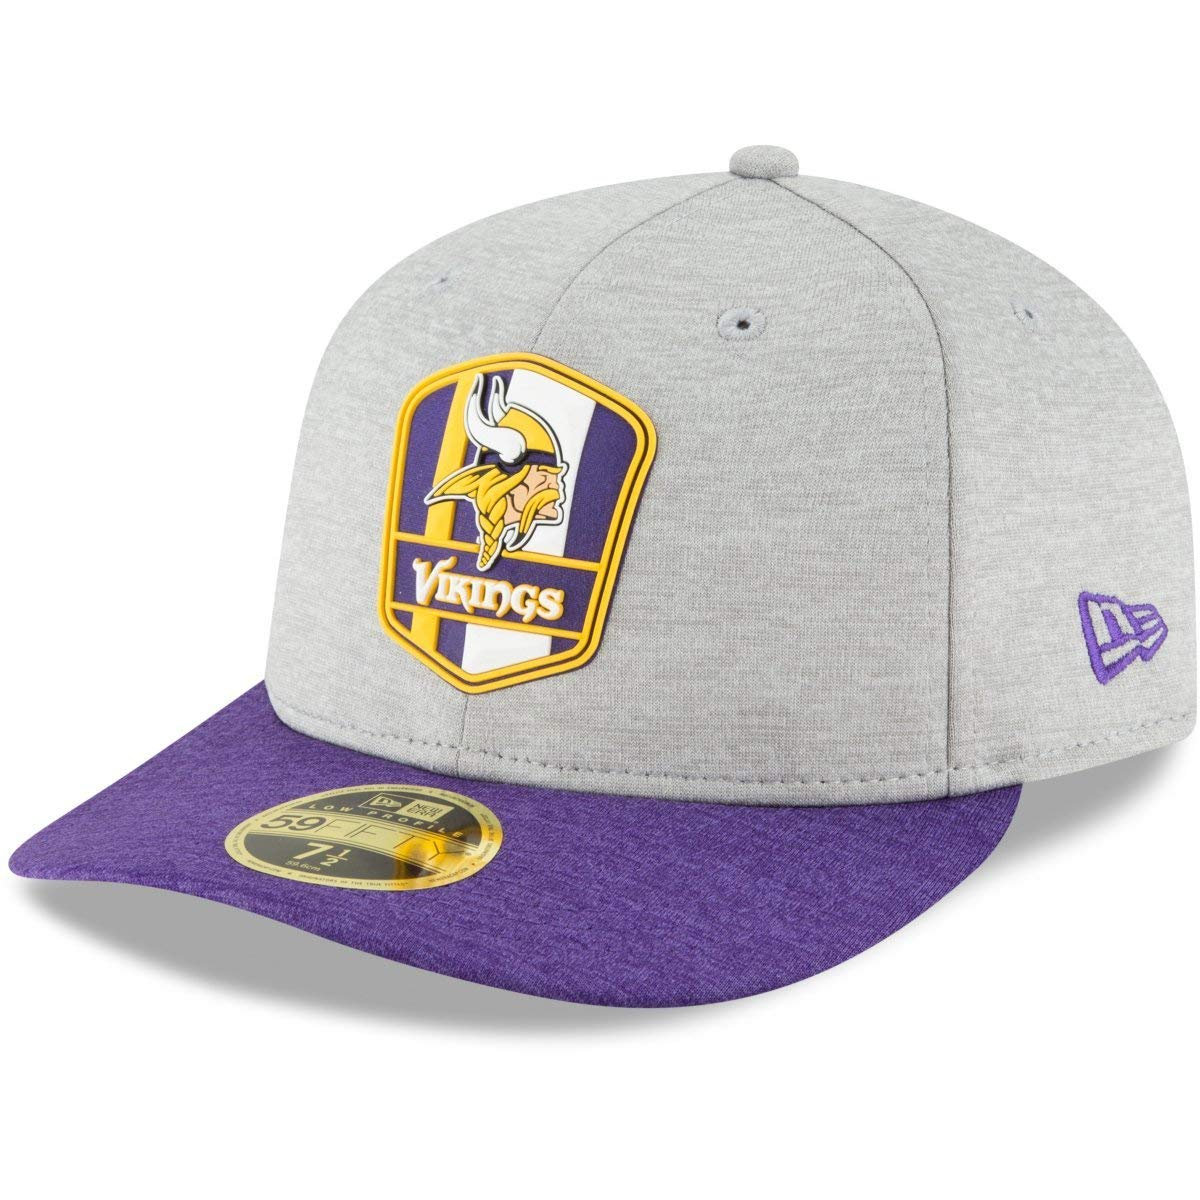 New Era 59Fifty LP Fitted Cap NFL Minnesota Vikings